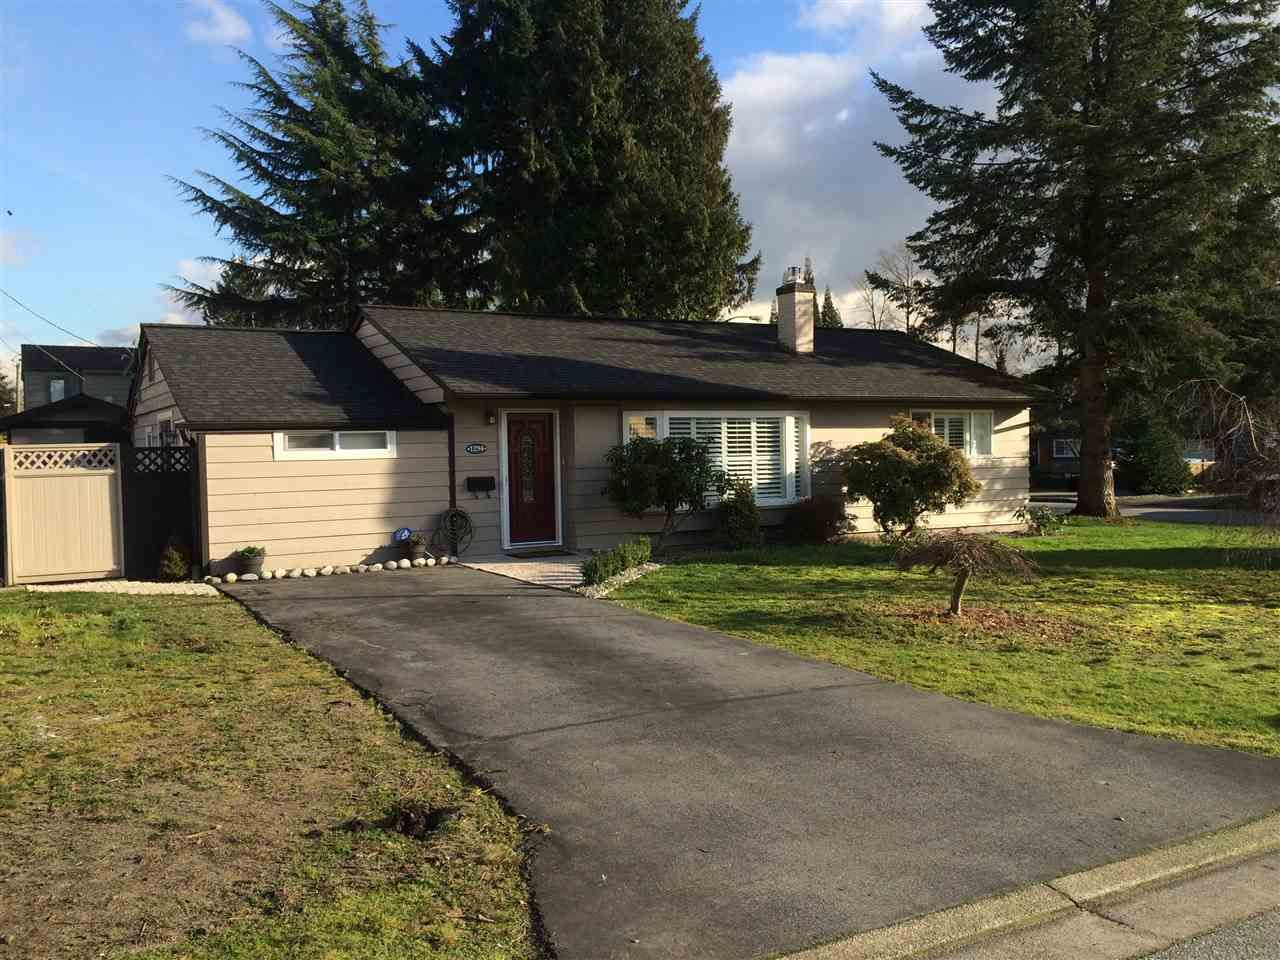 """Main Photo: 1294 DOGWOOD Crescent in North Vancouver: Norgate House for sale in """"NORGATE"""" : MLS®# R2030110"""